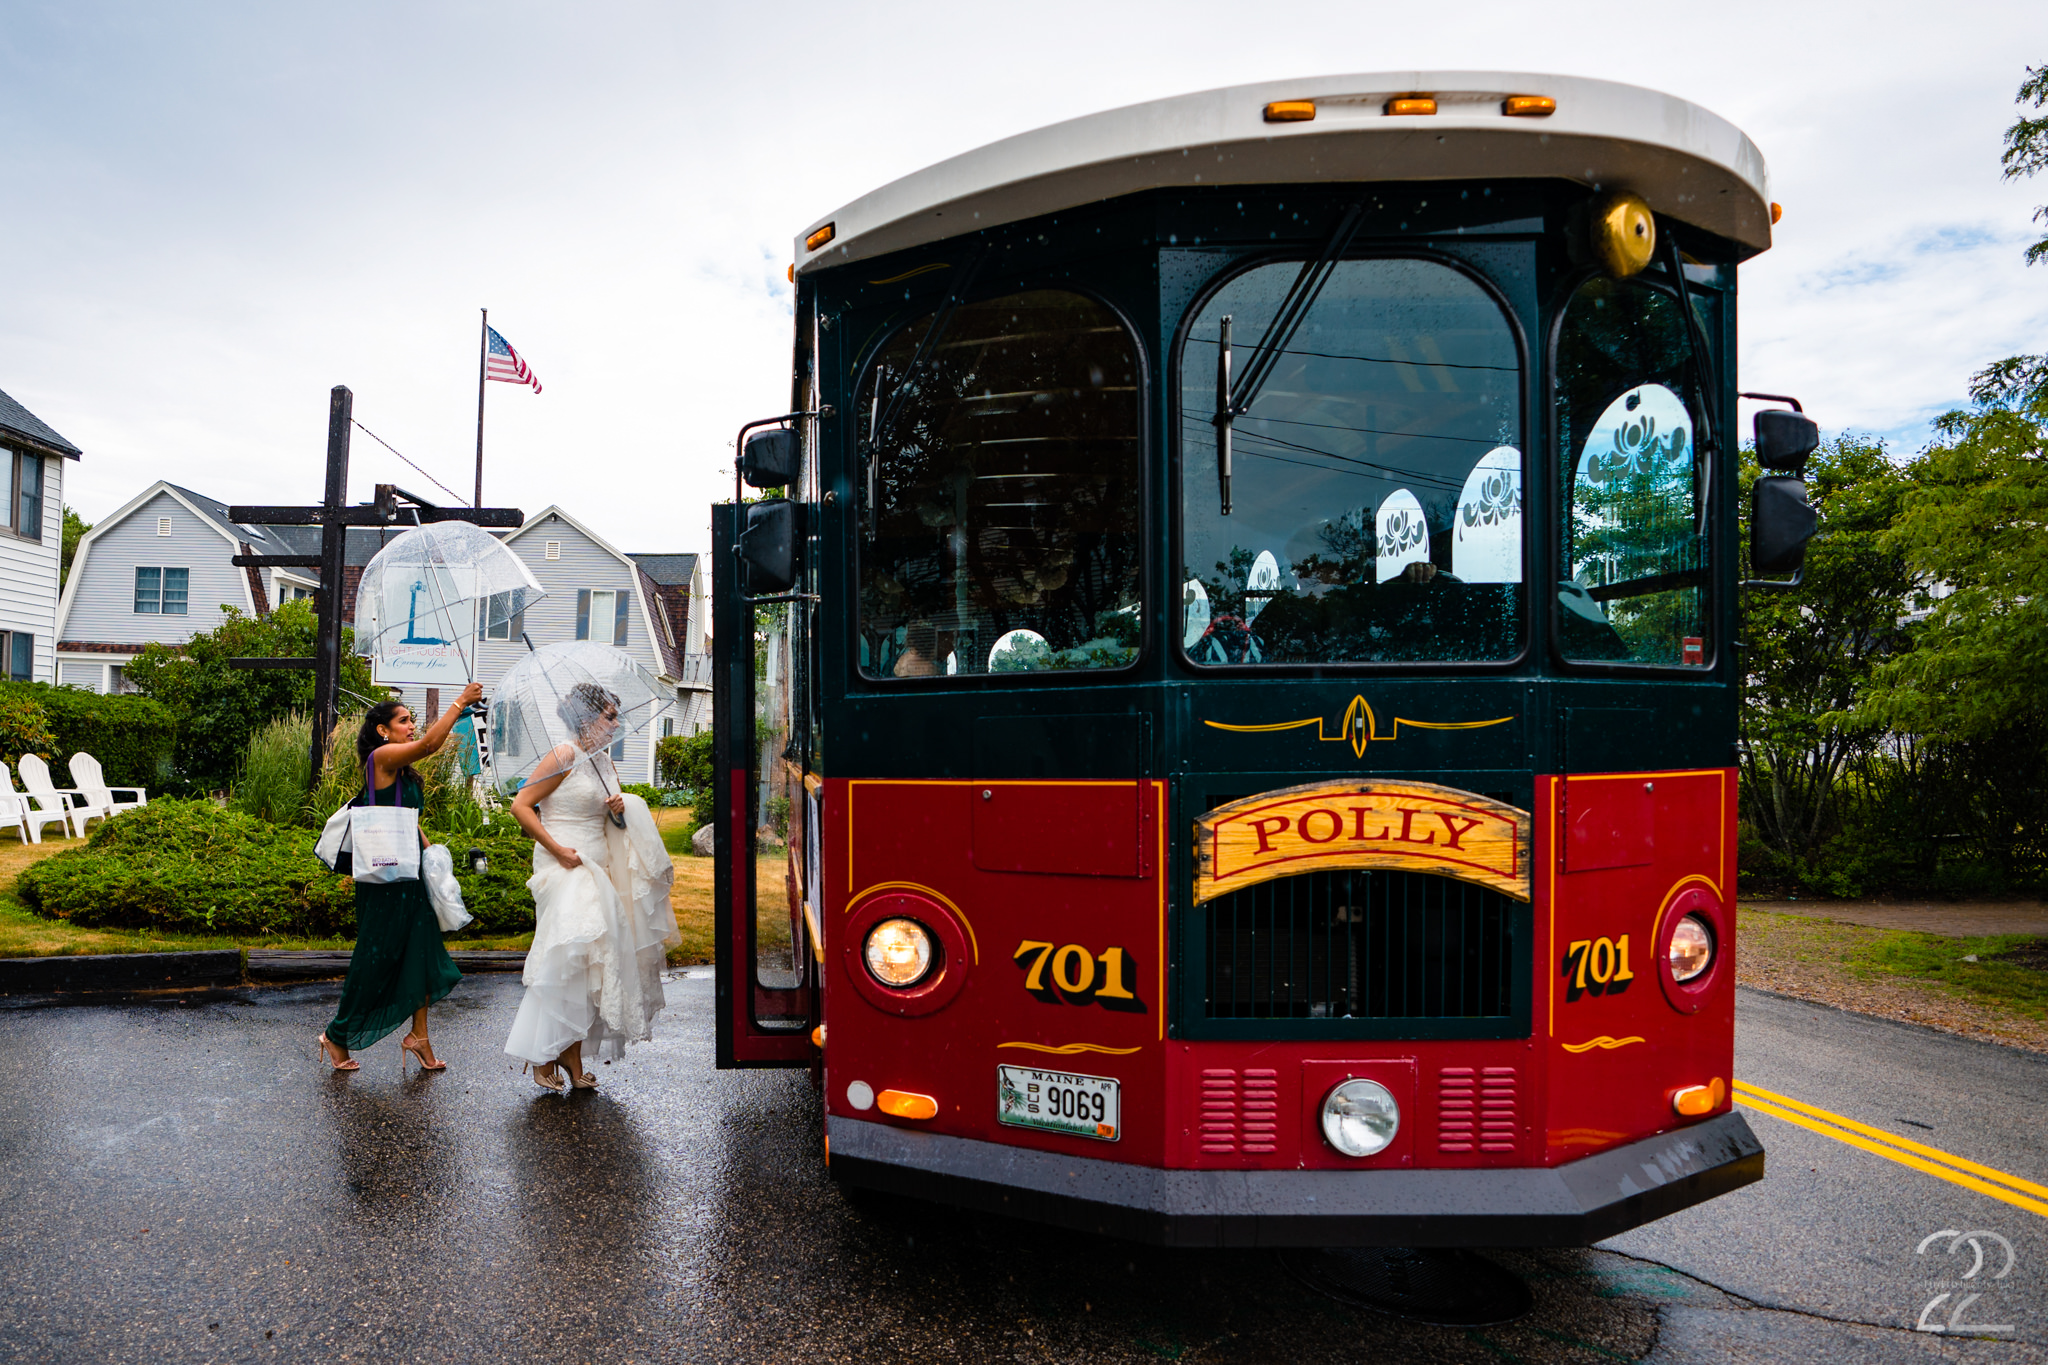 Choosing something out of the ordinary for your wedding makes it uniquely yours. Andrea rented a trolly to bring them to the York Golf & Tennis Club for their wedding. It was so much fun for everyone.